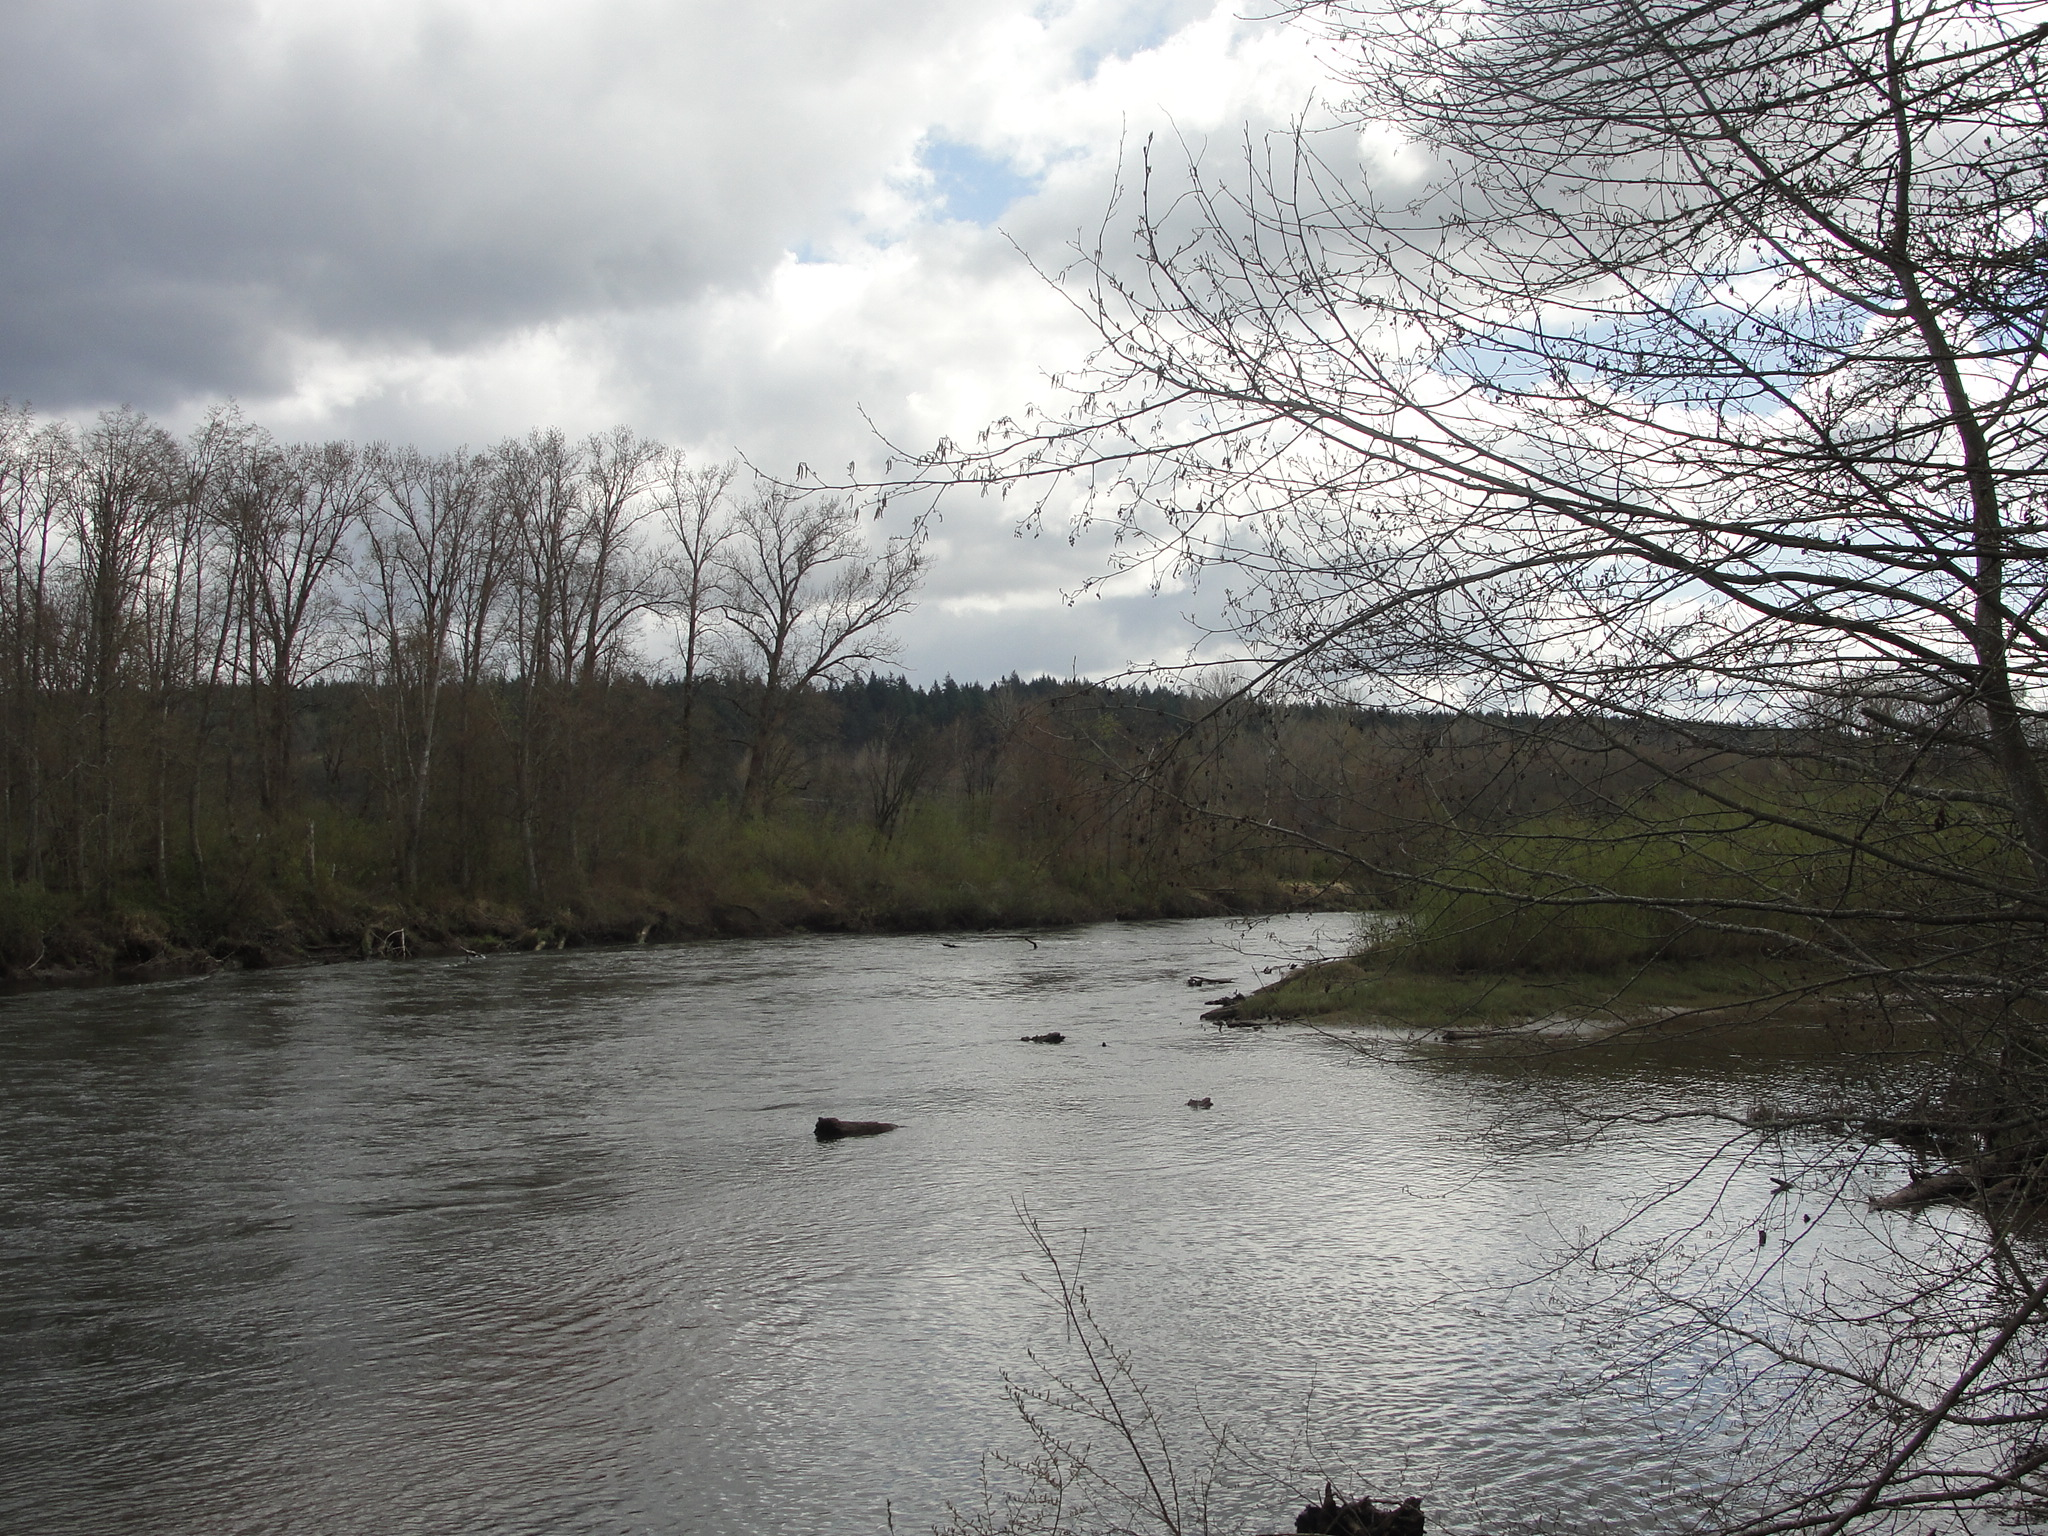 The Nisqually River